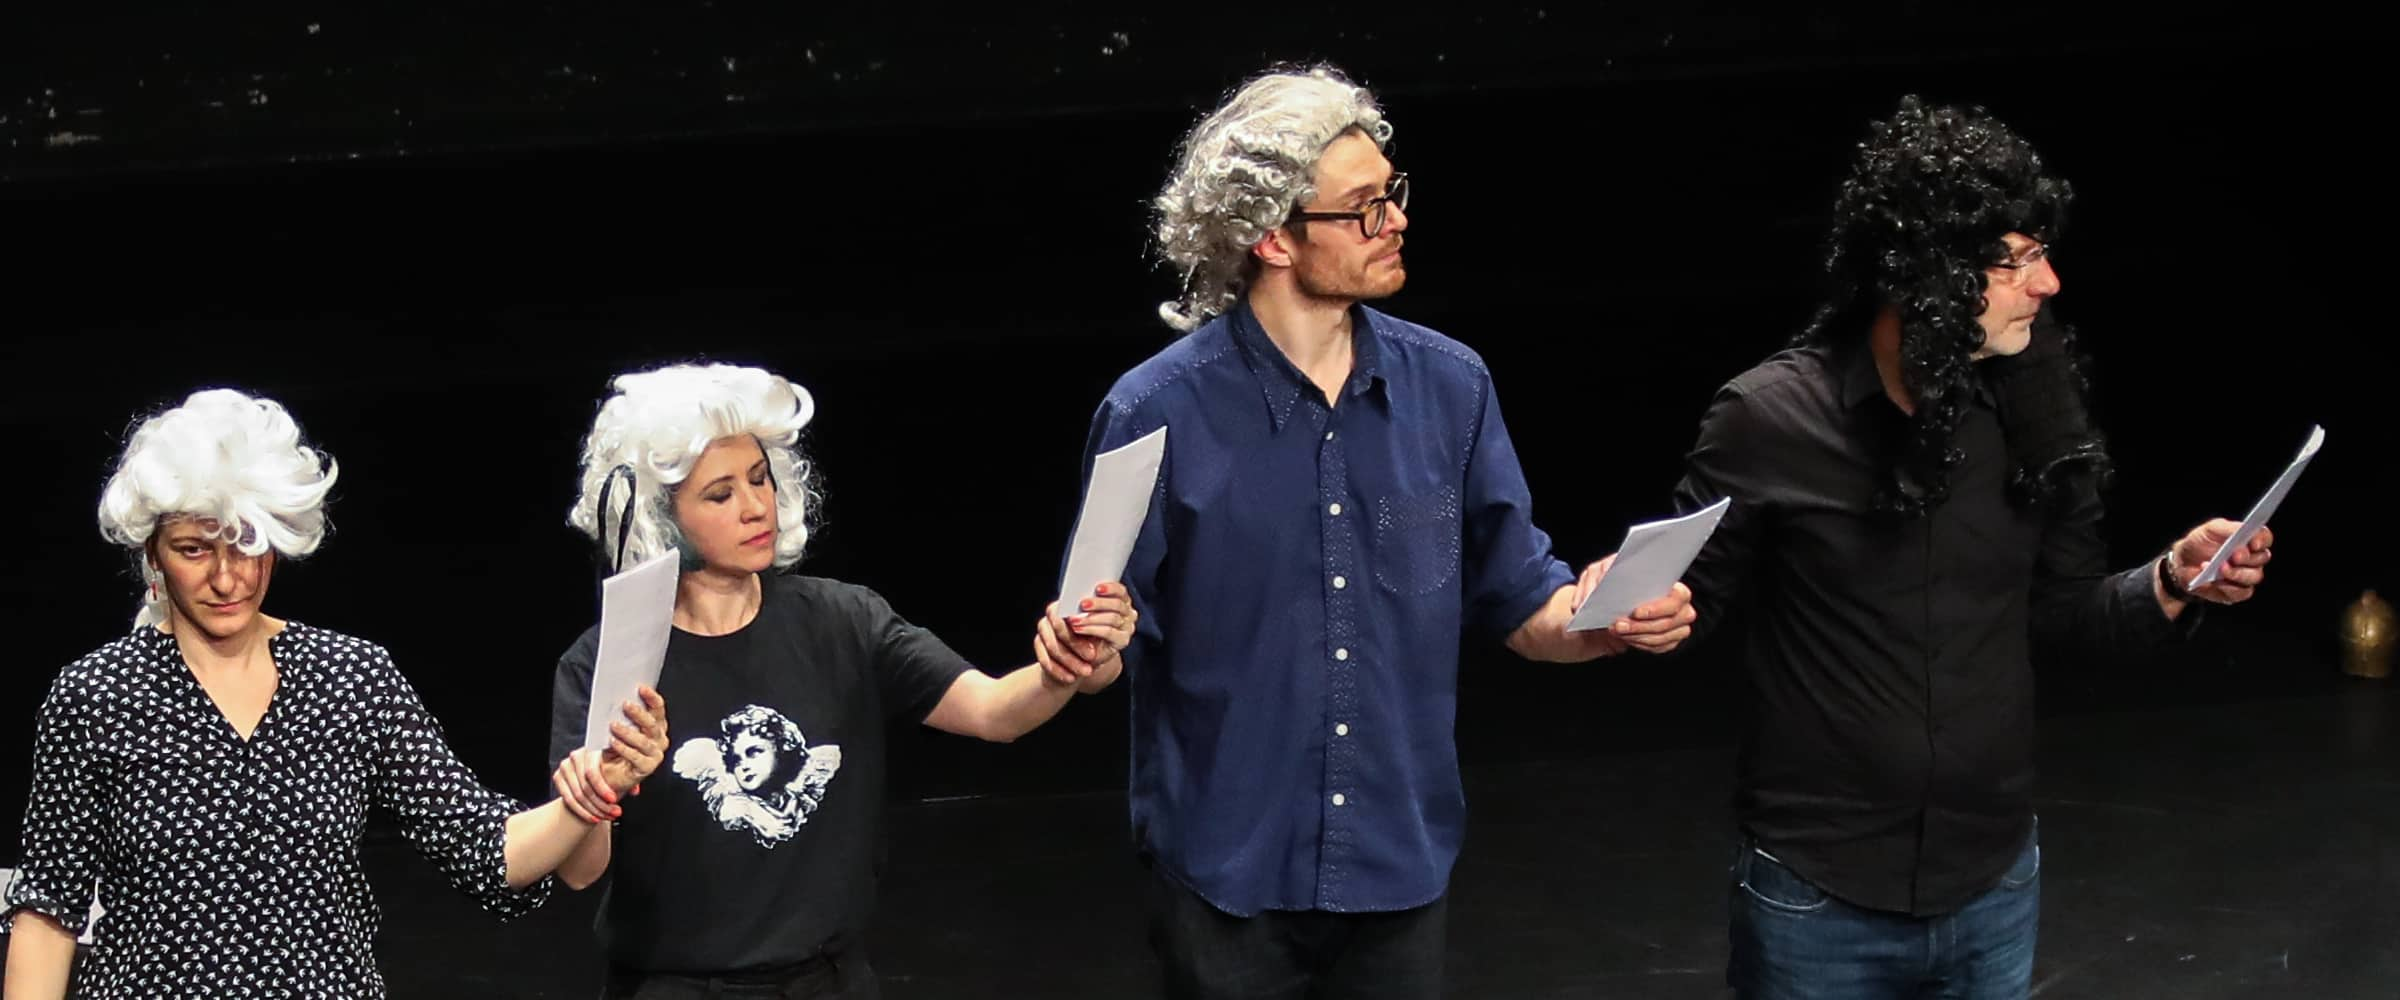 Performers wearing wigs dance with scores in their hands